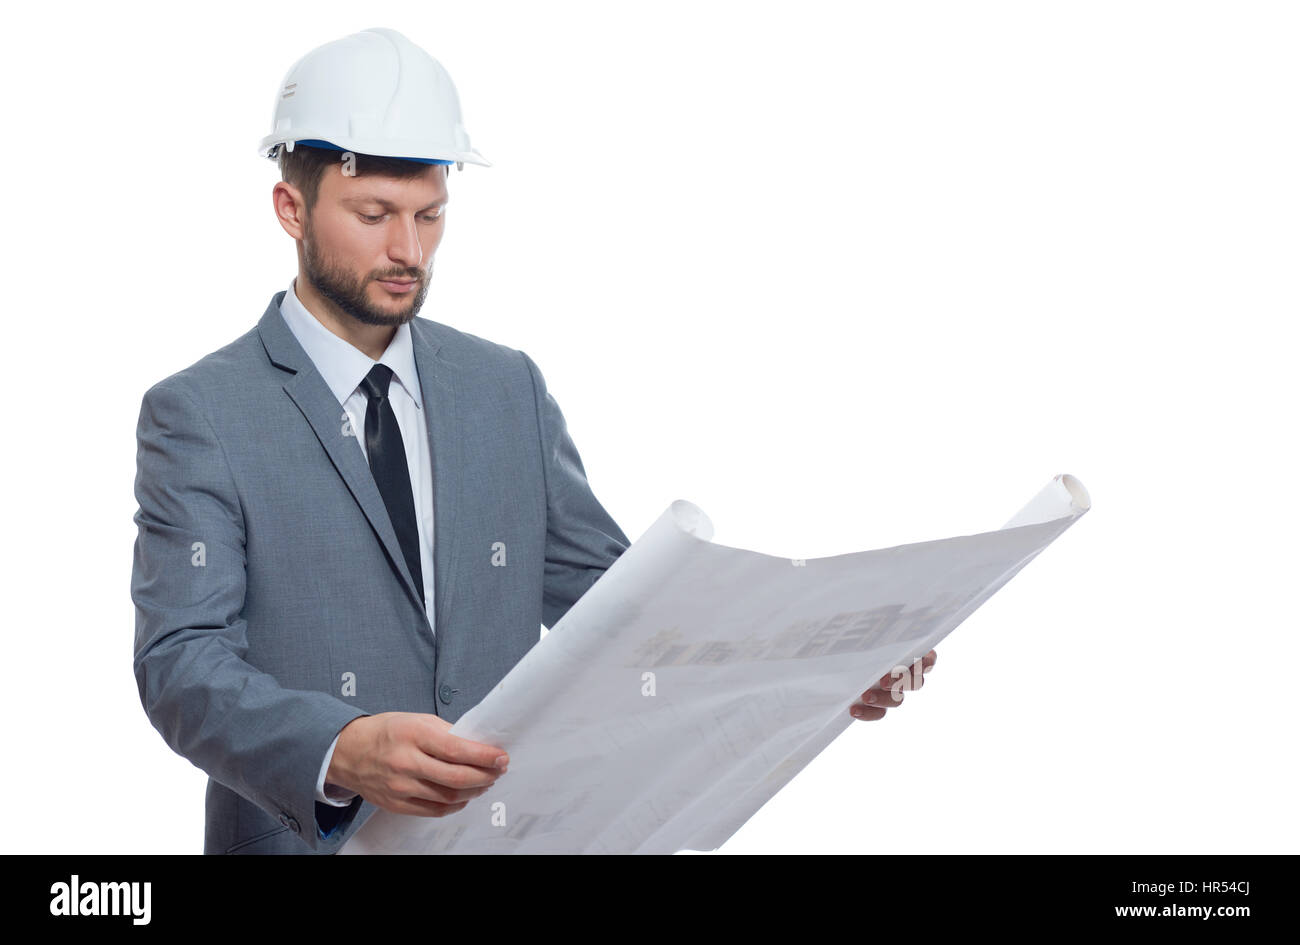 Diligent professional. Handsome mature bearded male architect wearing hardhat looking serious while examining blueprints - Stock Image